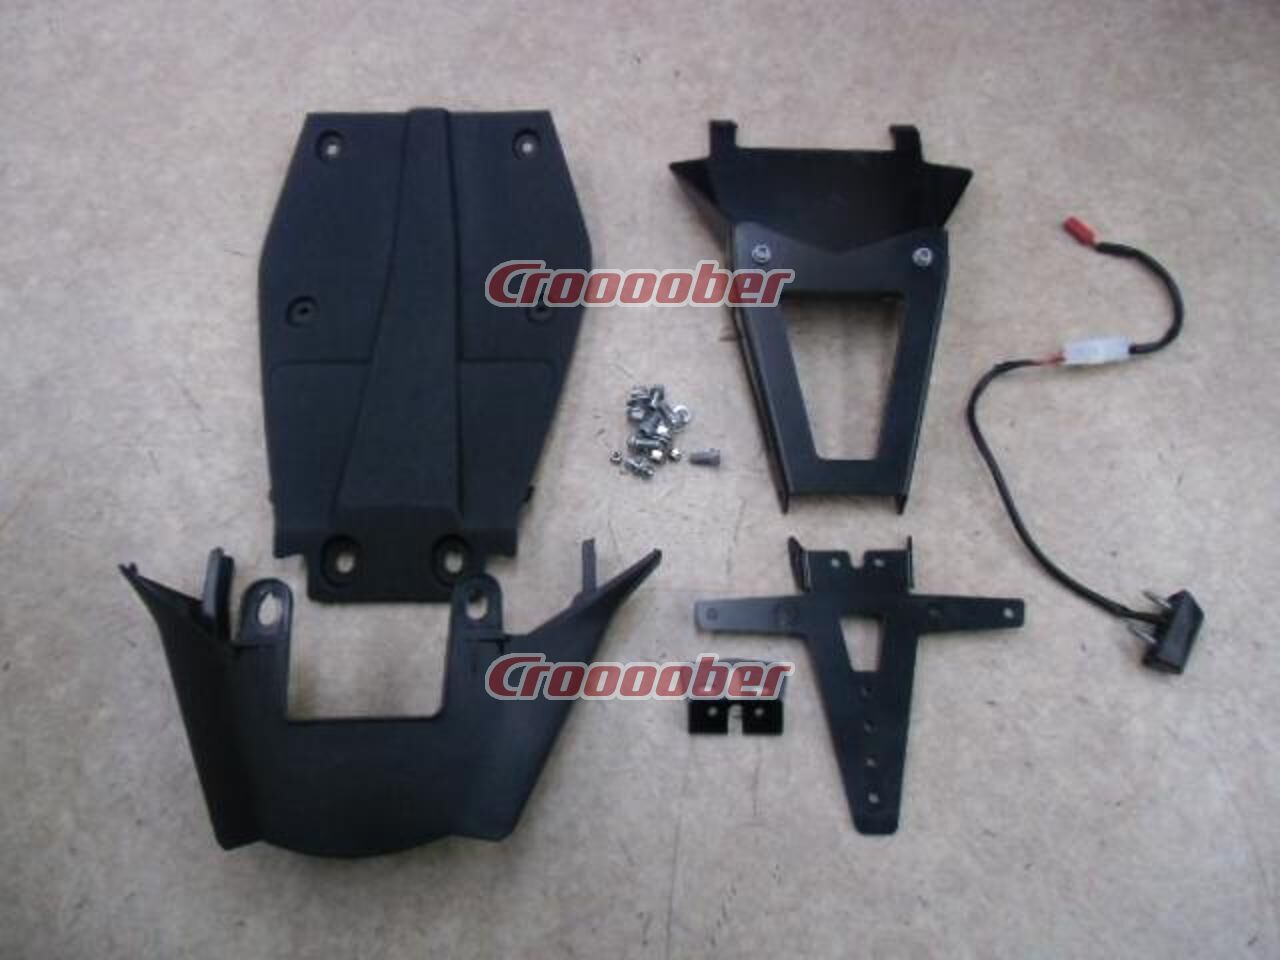 KTM Power Parts License Plate Holder Kit DUKE | Fenders | Croooober ...